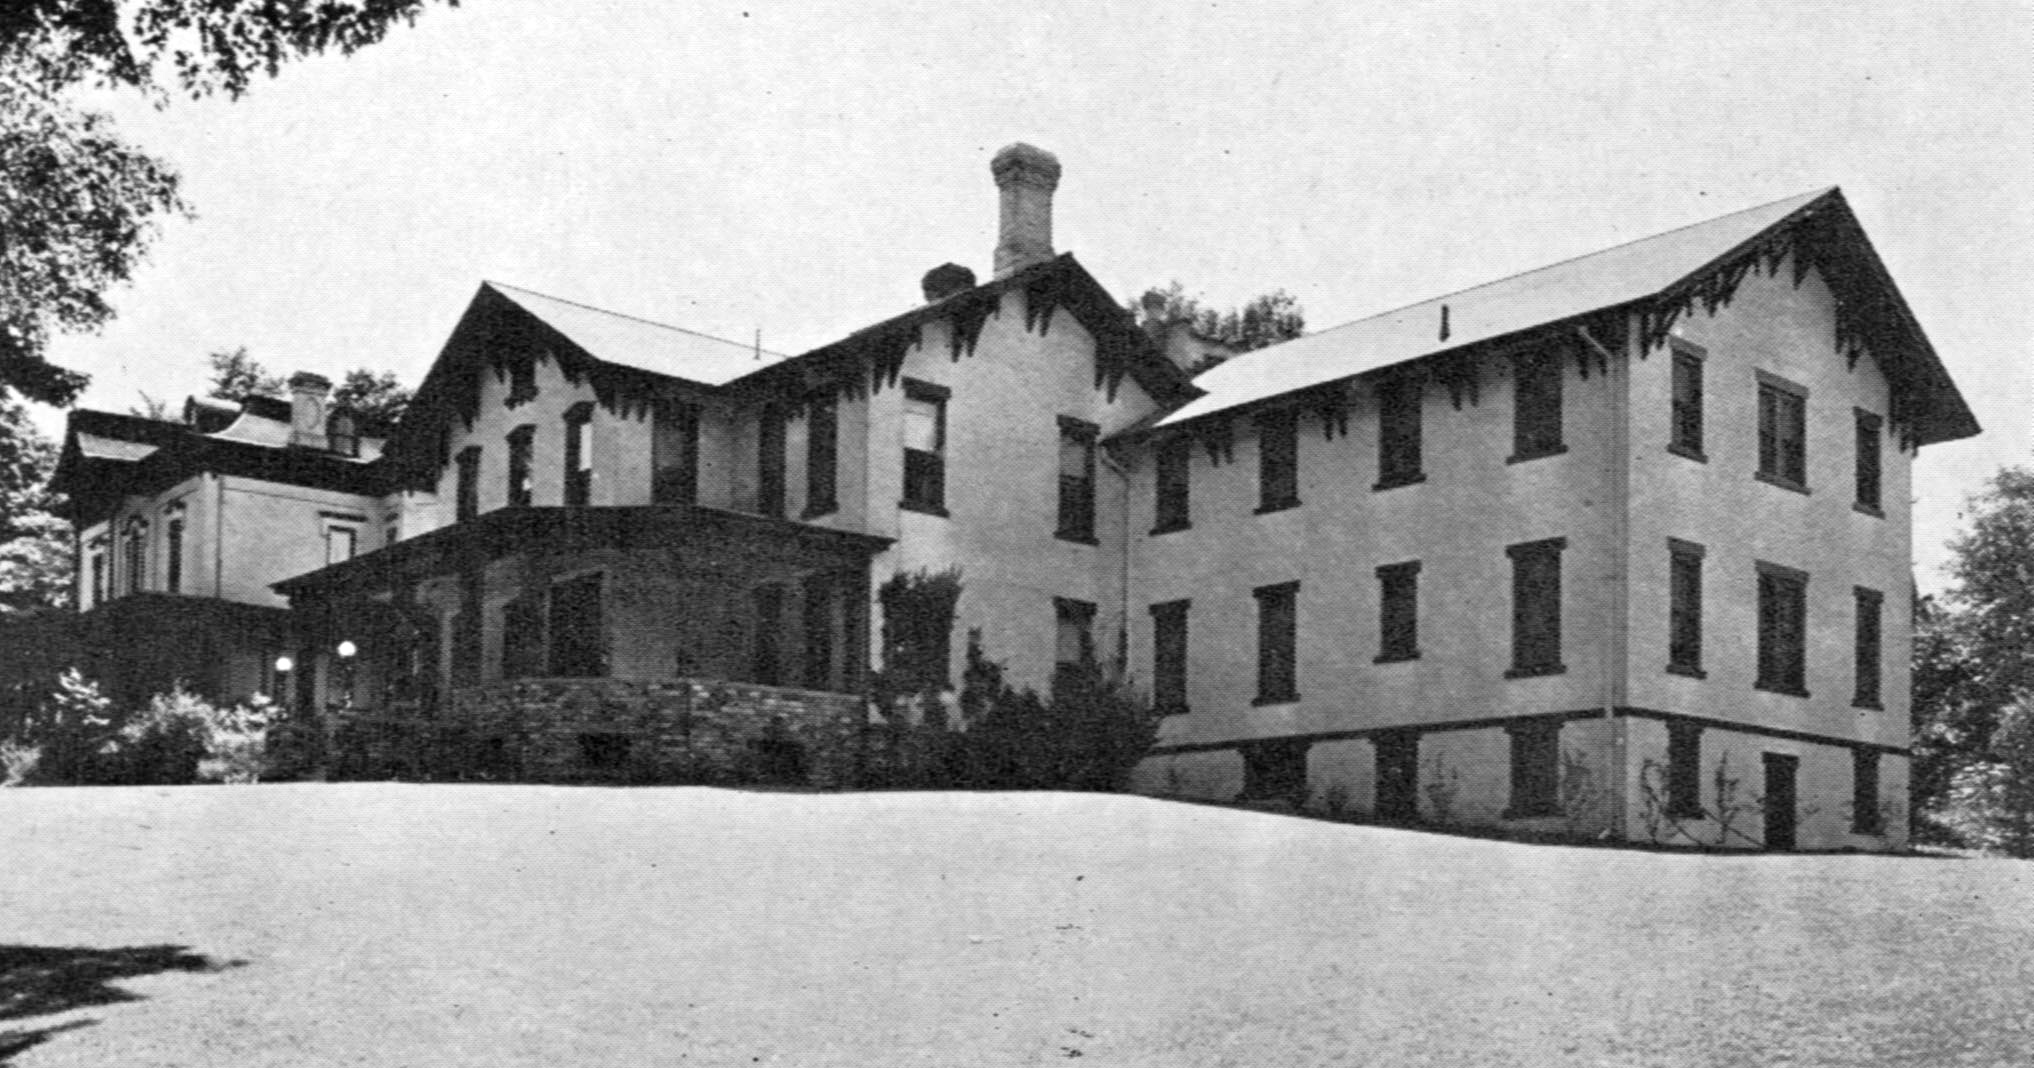 The William Waldron Home, with the Hillsdale Hospital Extension